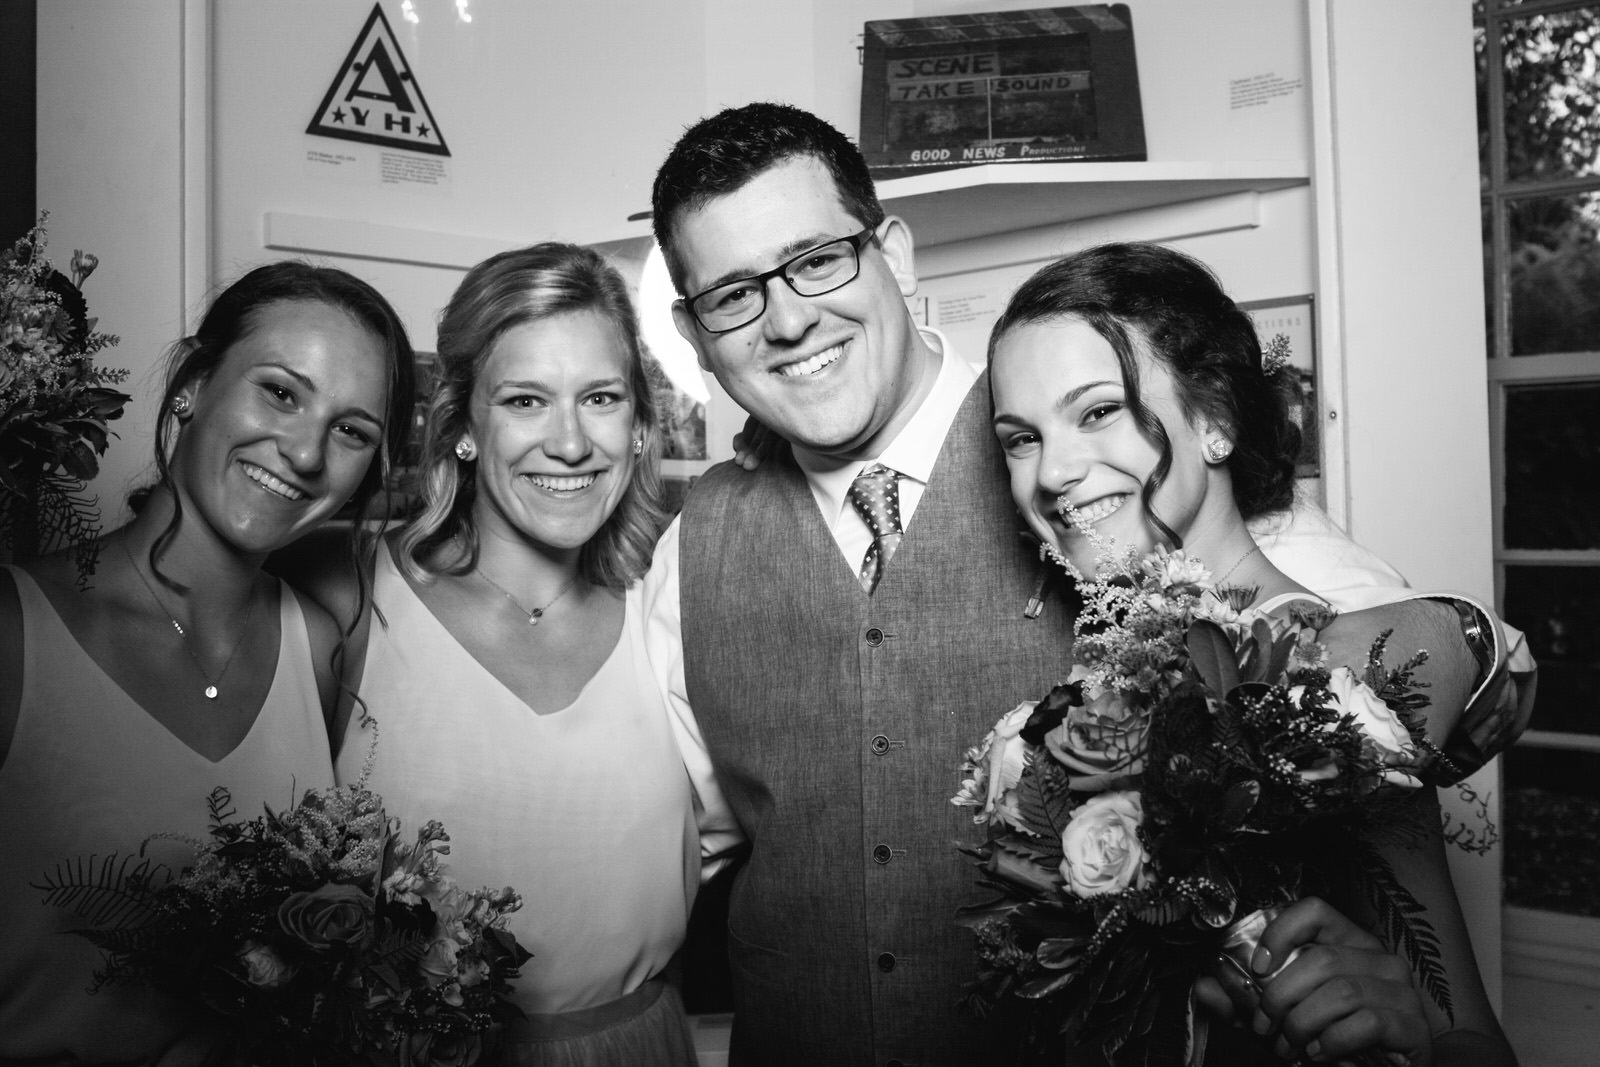 Richard-Donna-Wedding-Photo-Booth-5.jpg